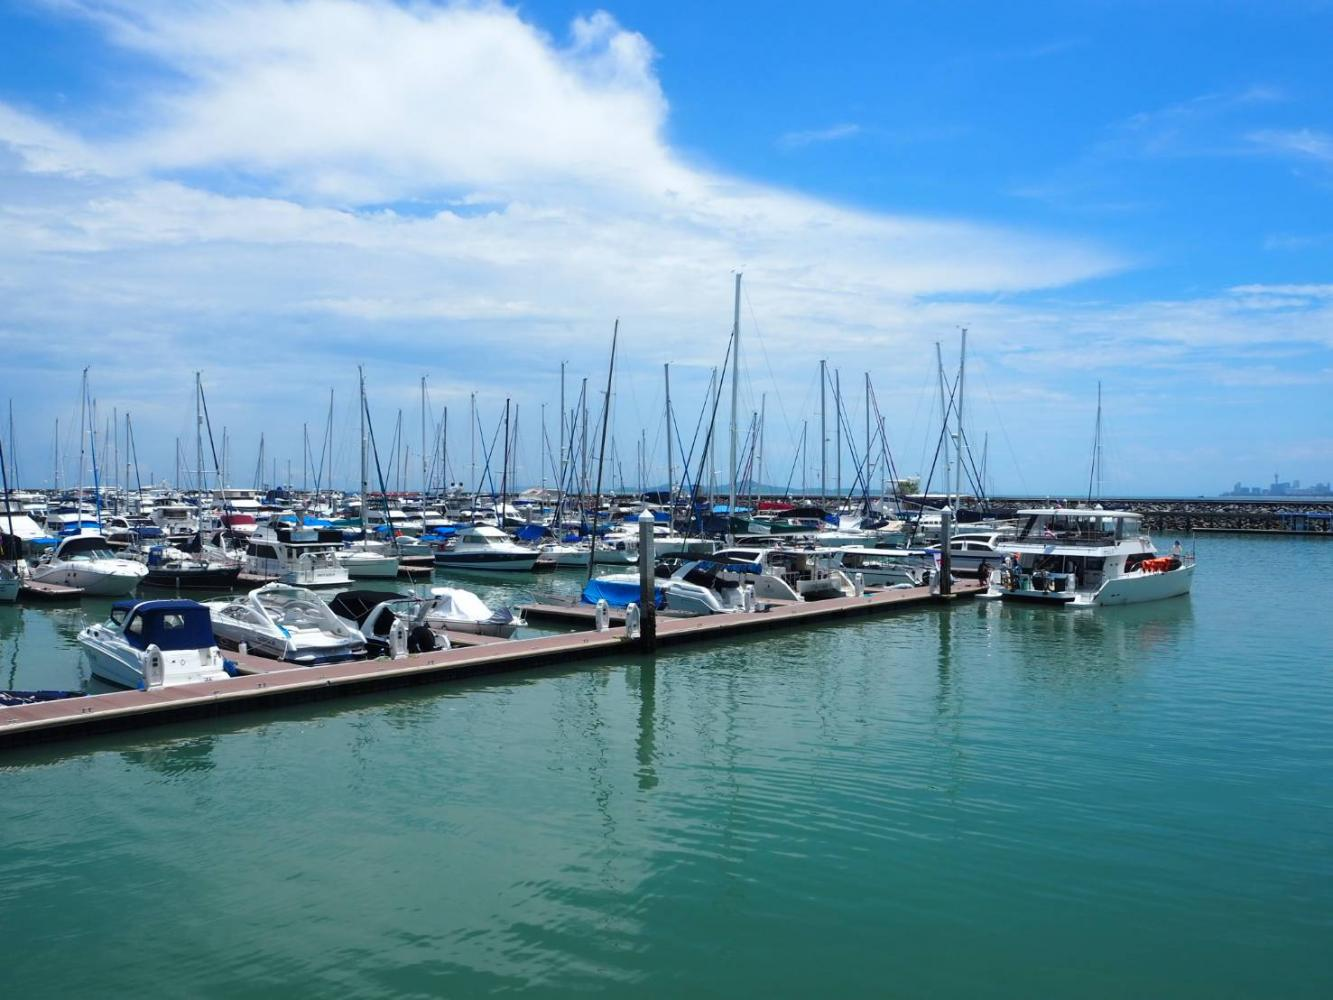 Ocean Marina Yacht Club Pattaya has capacity for 560 boats, including 450 in the water and 110 onshore. (Photo by Dusida Worrachaddejchat)